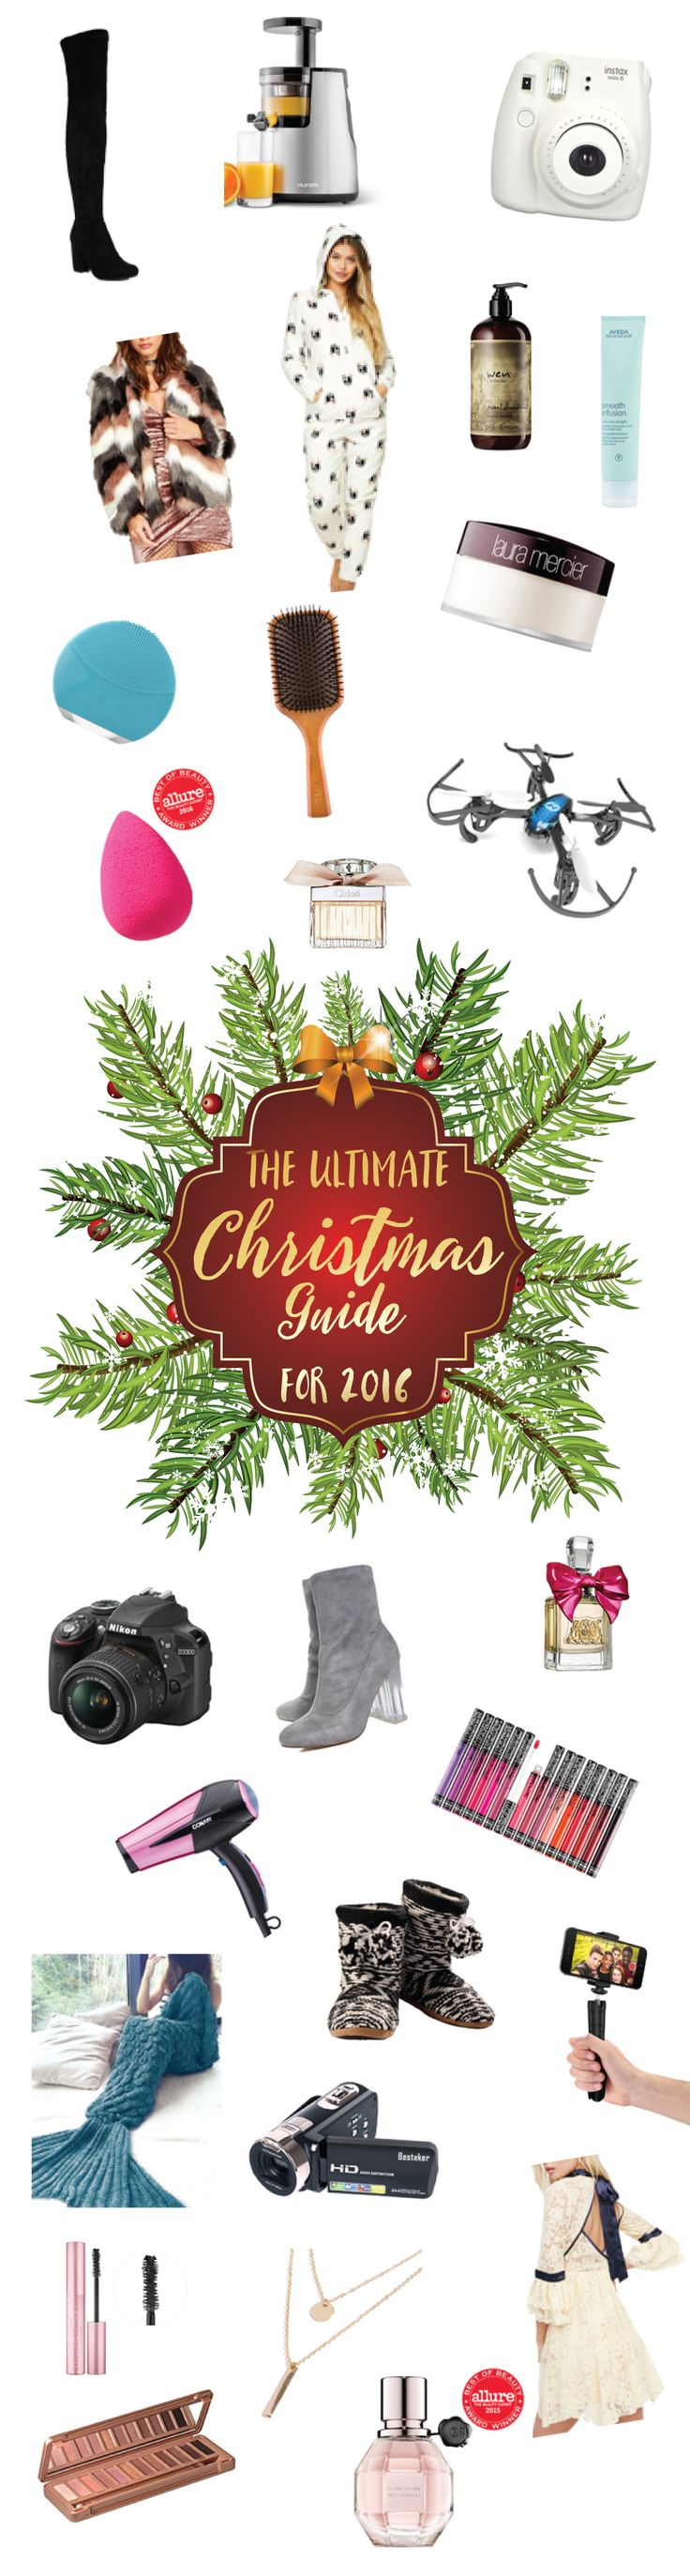 Holiday shopping just got easier with this ULTIMATE gift guide. COme check it out! #christmas #giftguide #christmasgifts